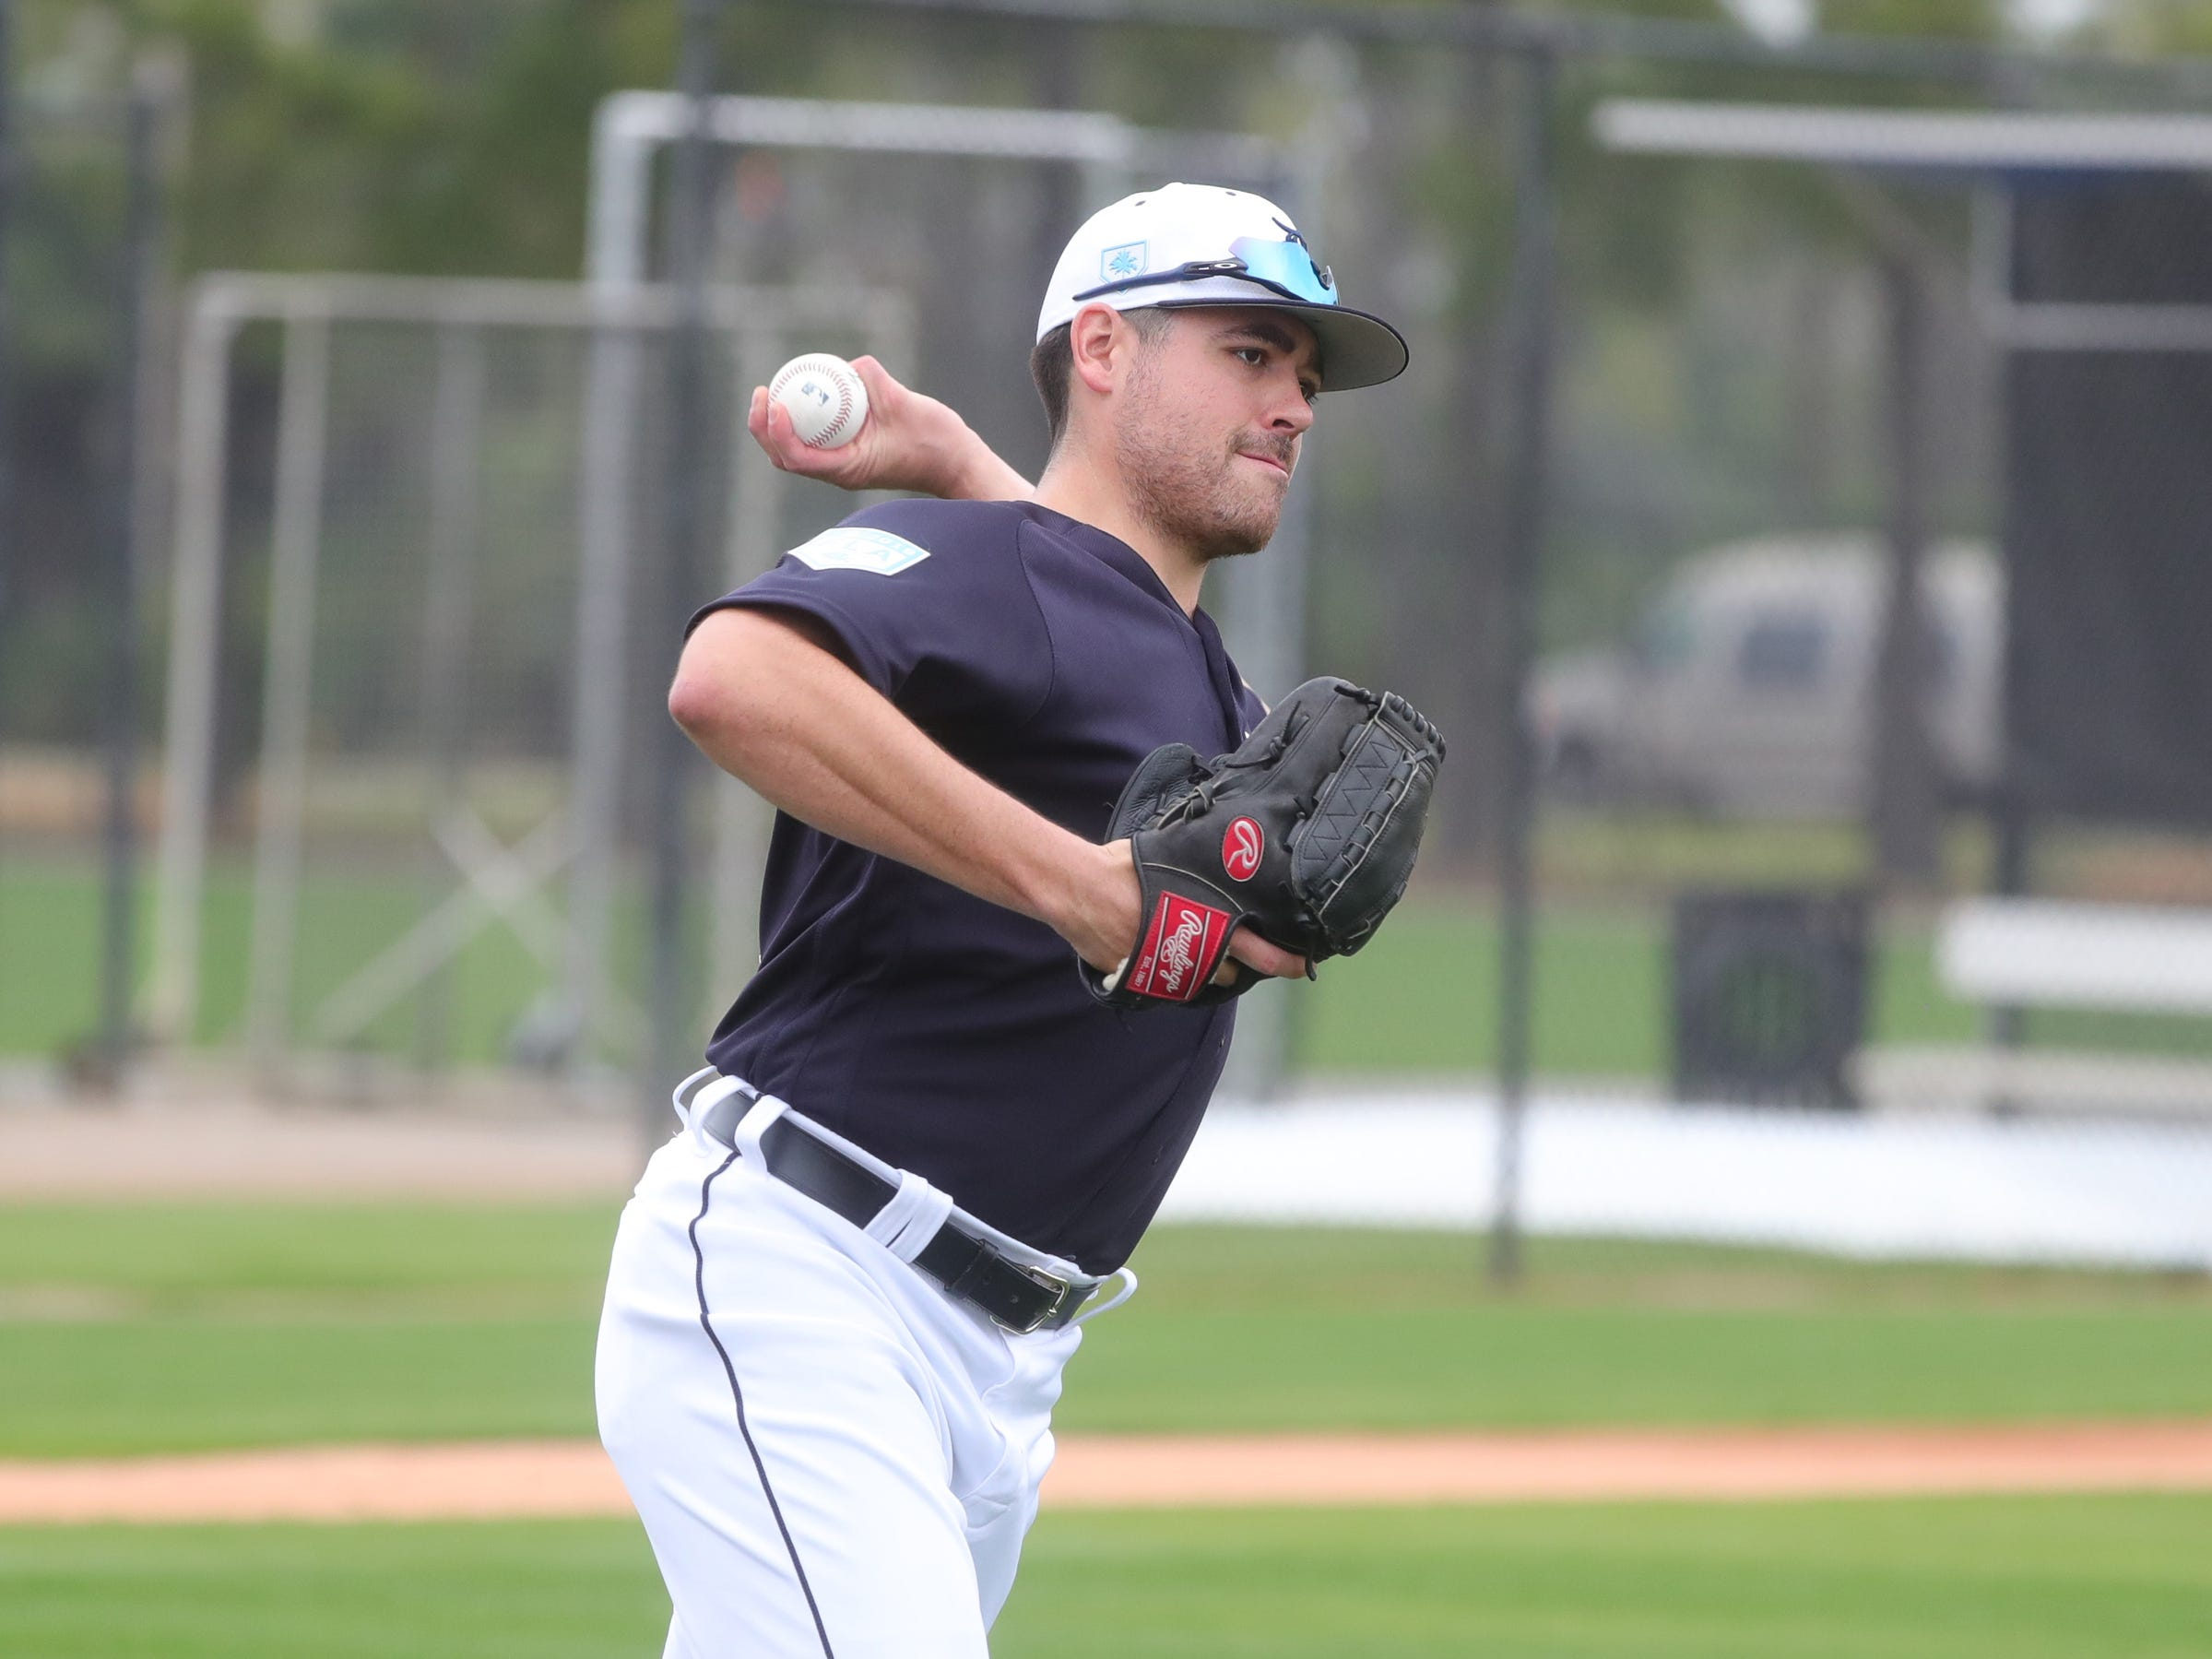 Detroit Tigers pitcher Matt Moore throws to first base during practice Monday, Feb. 18, 2019 at Publix Field at Joker Marchant Stadium in Lakeland, Fla.